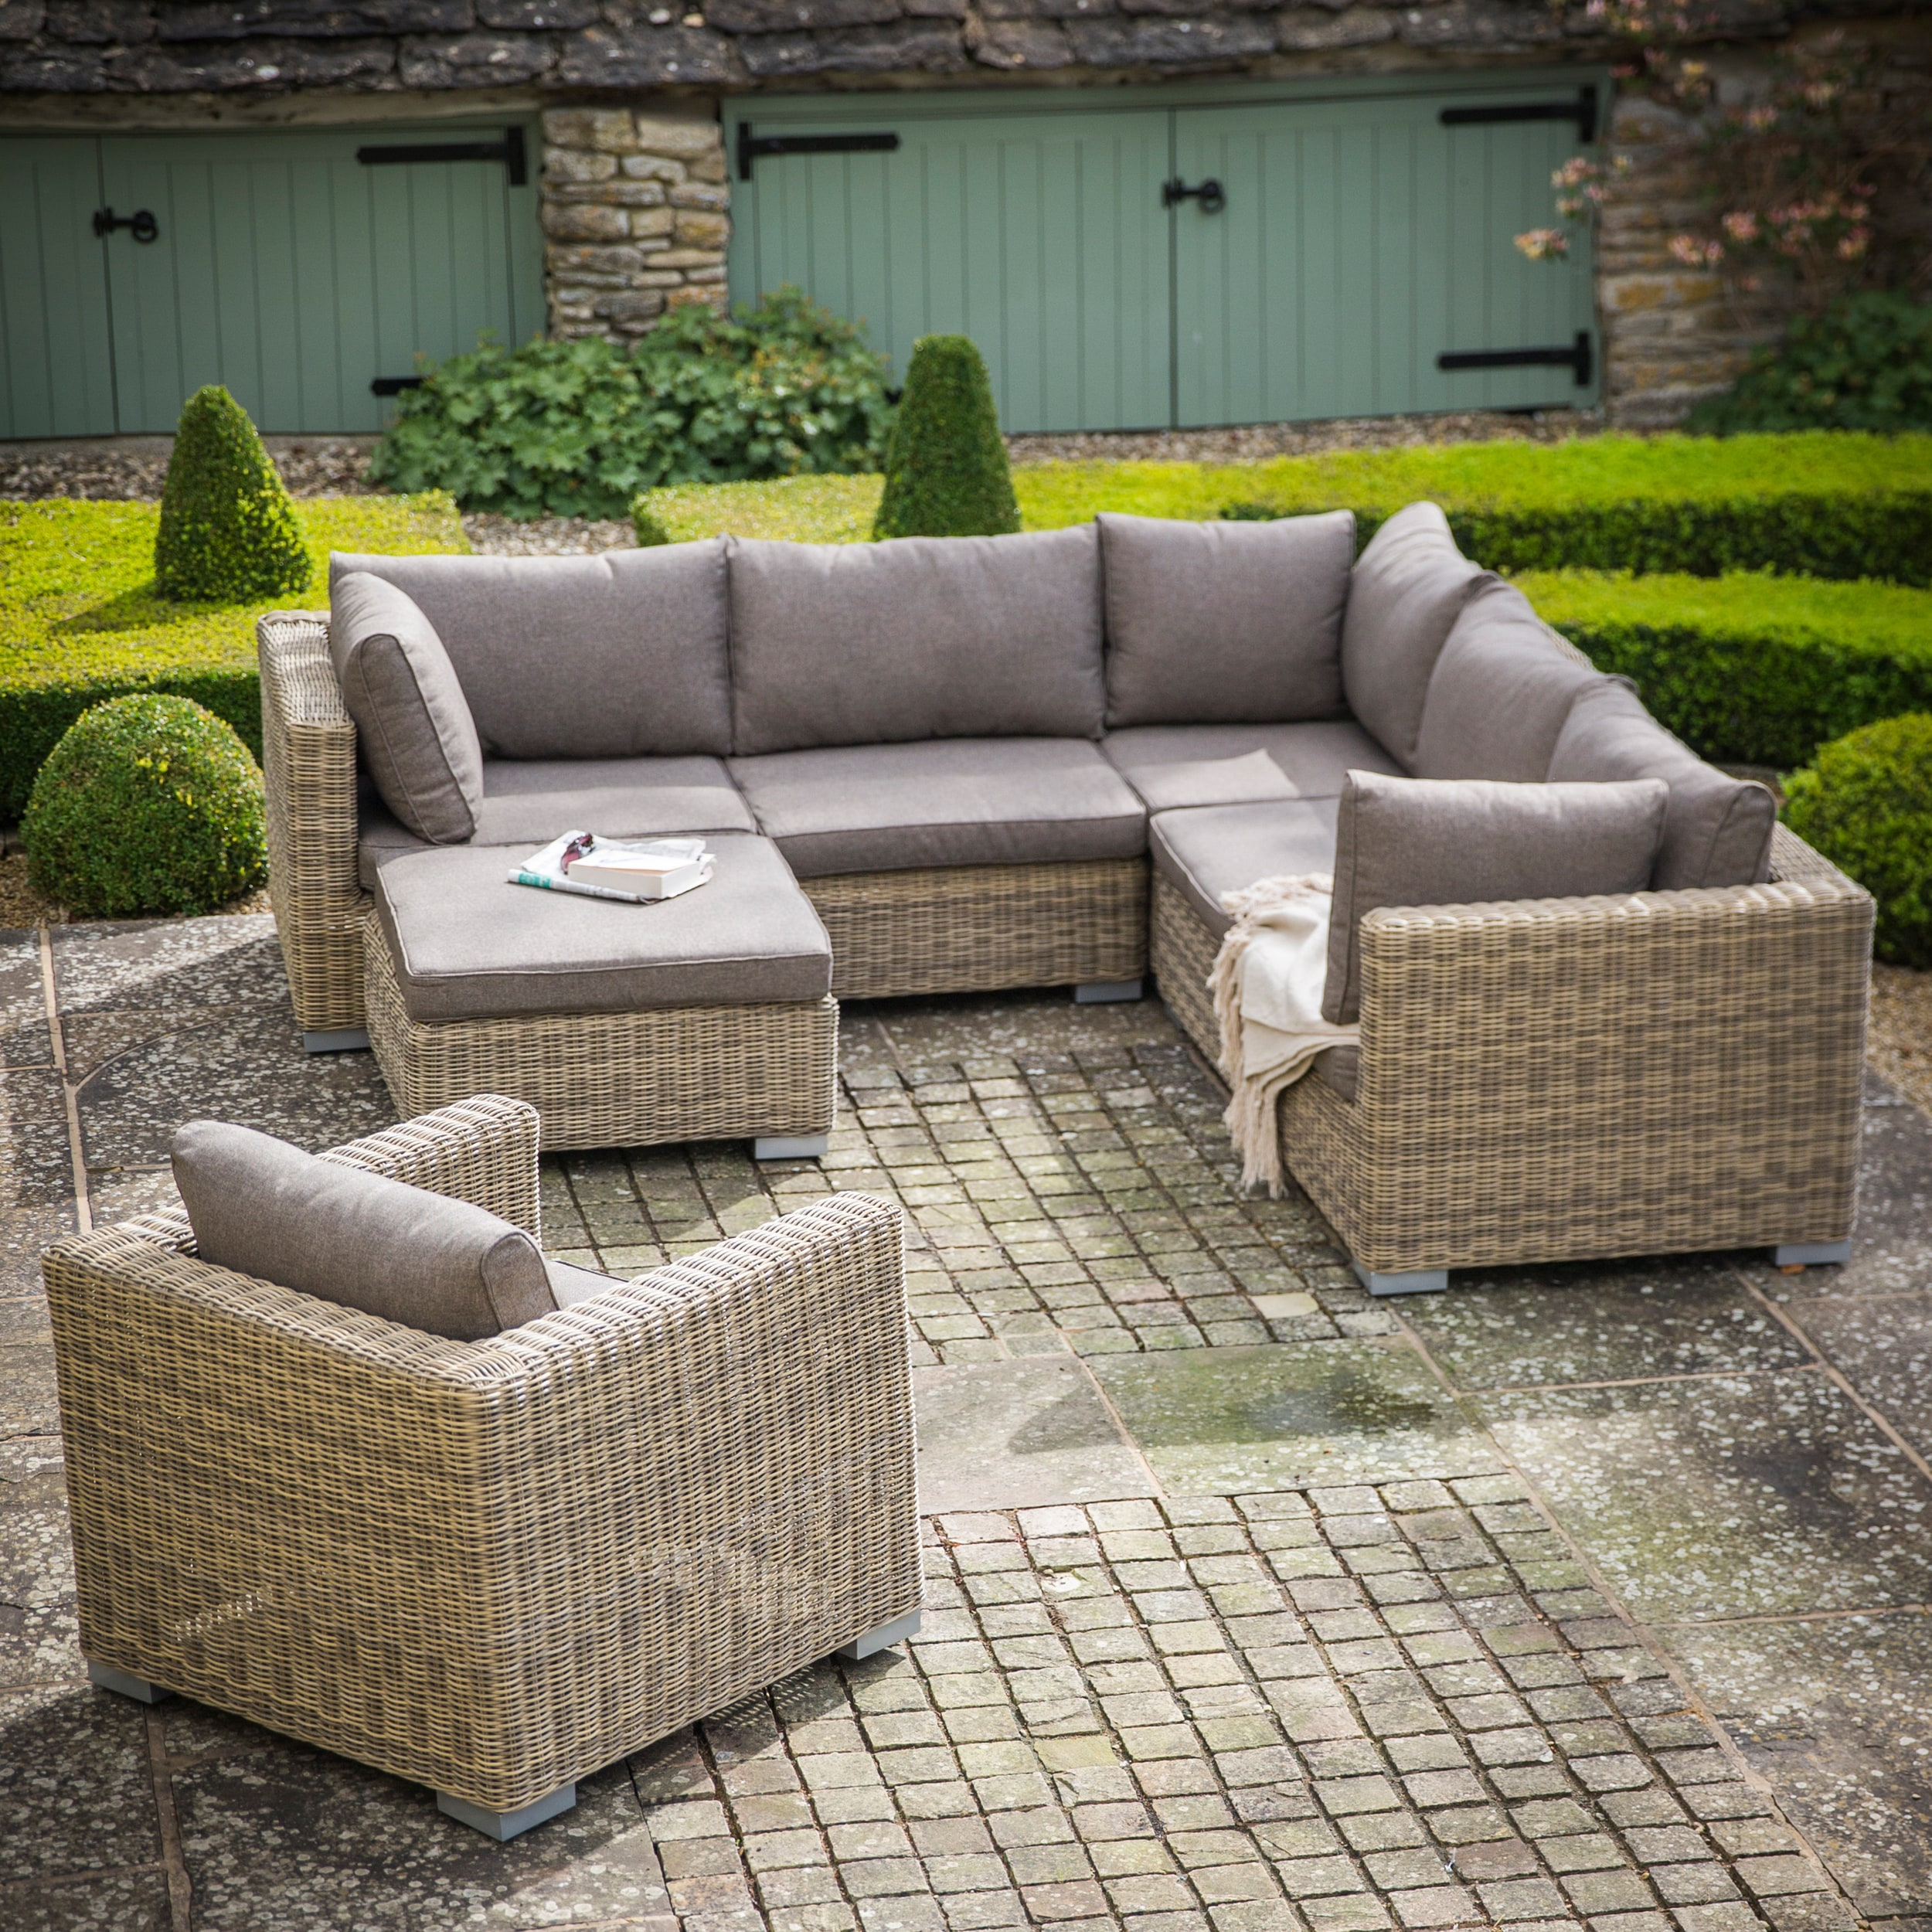 All-weather Rattan Marden Outdoor Corner Sofa Set | Garden Trading